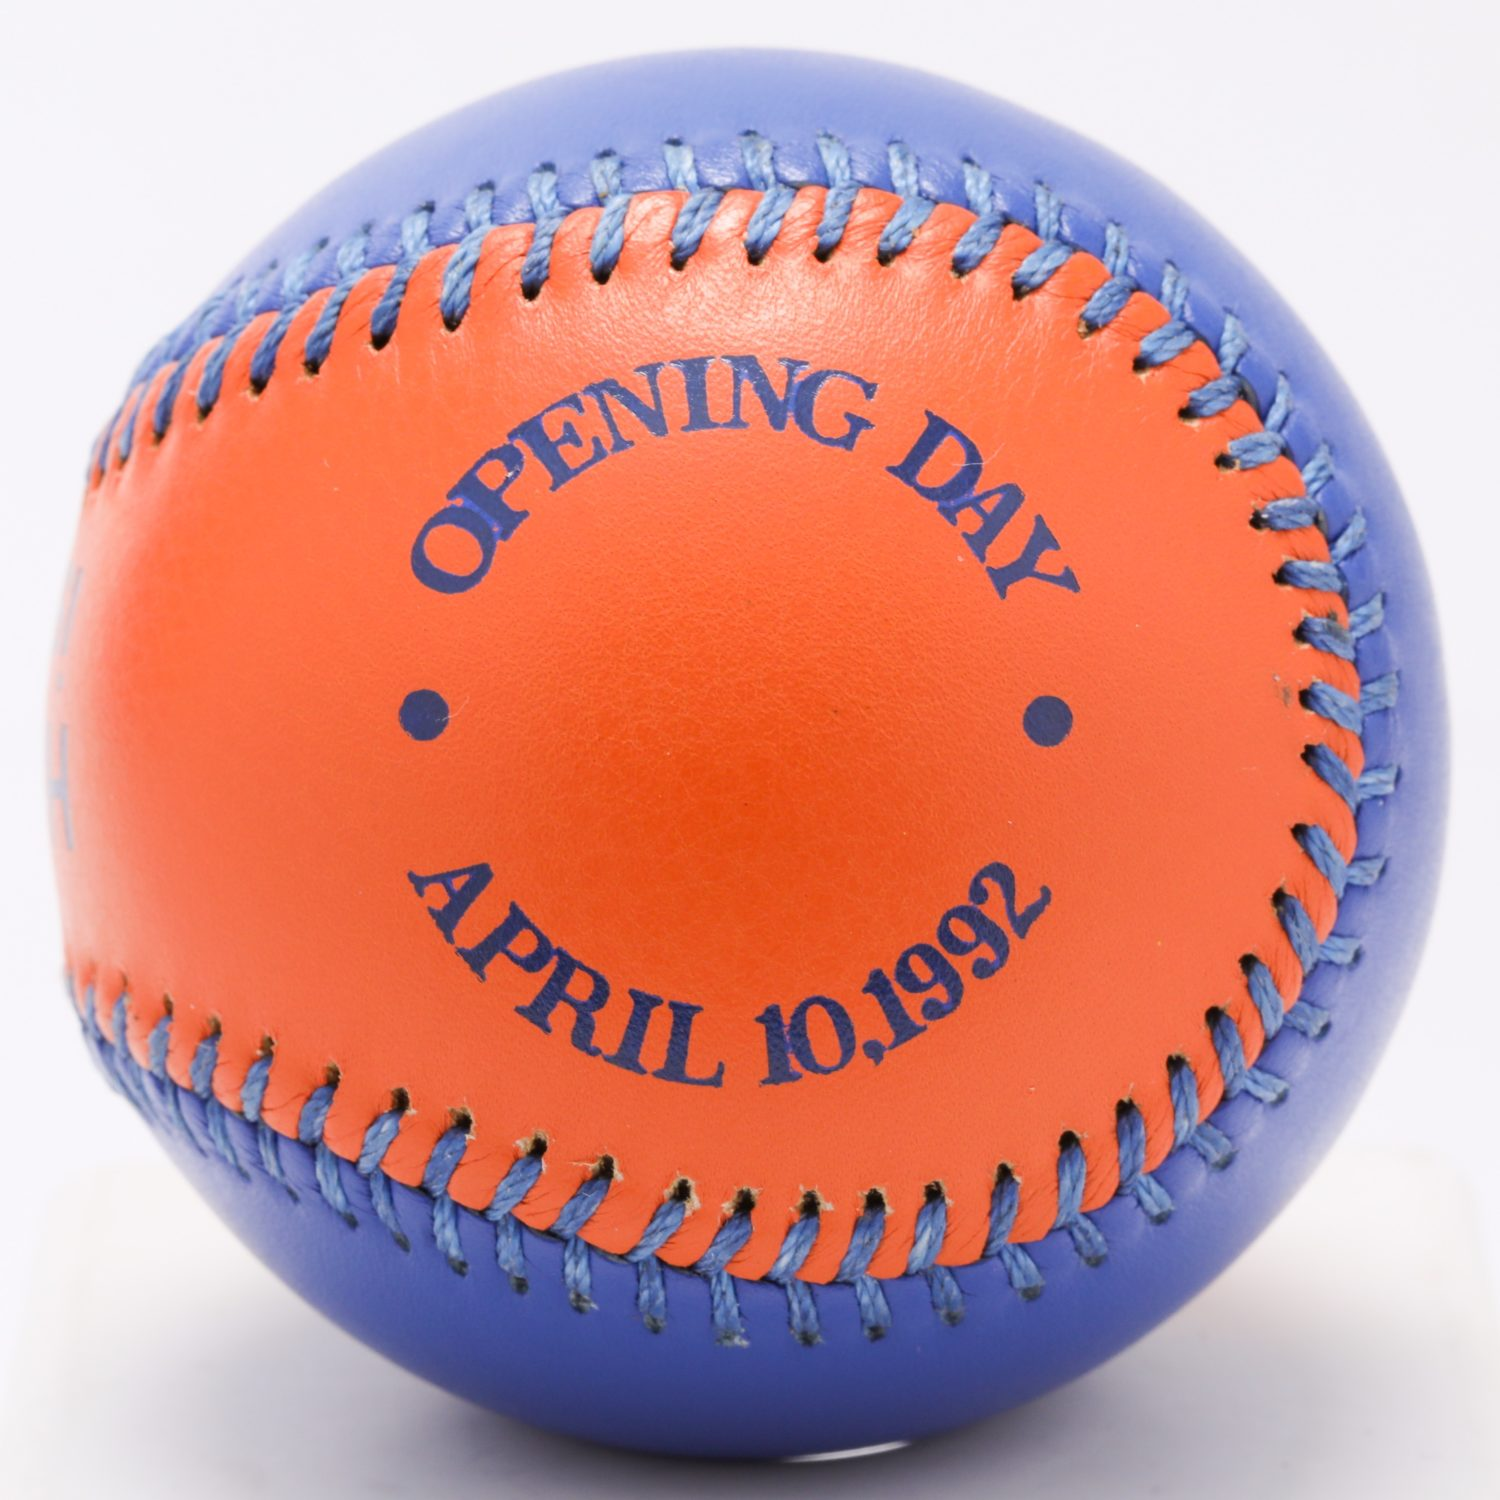 Mets-Colored 1992 Opening Day Baseball